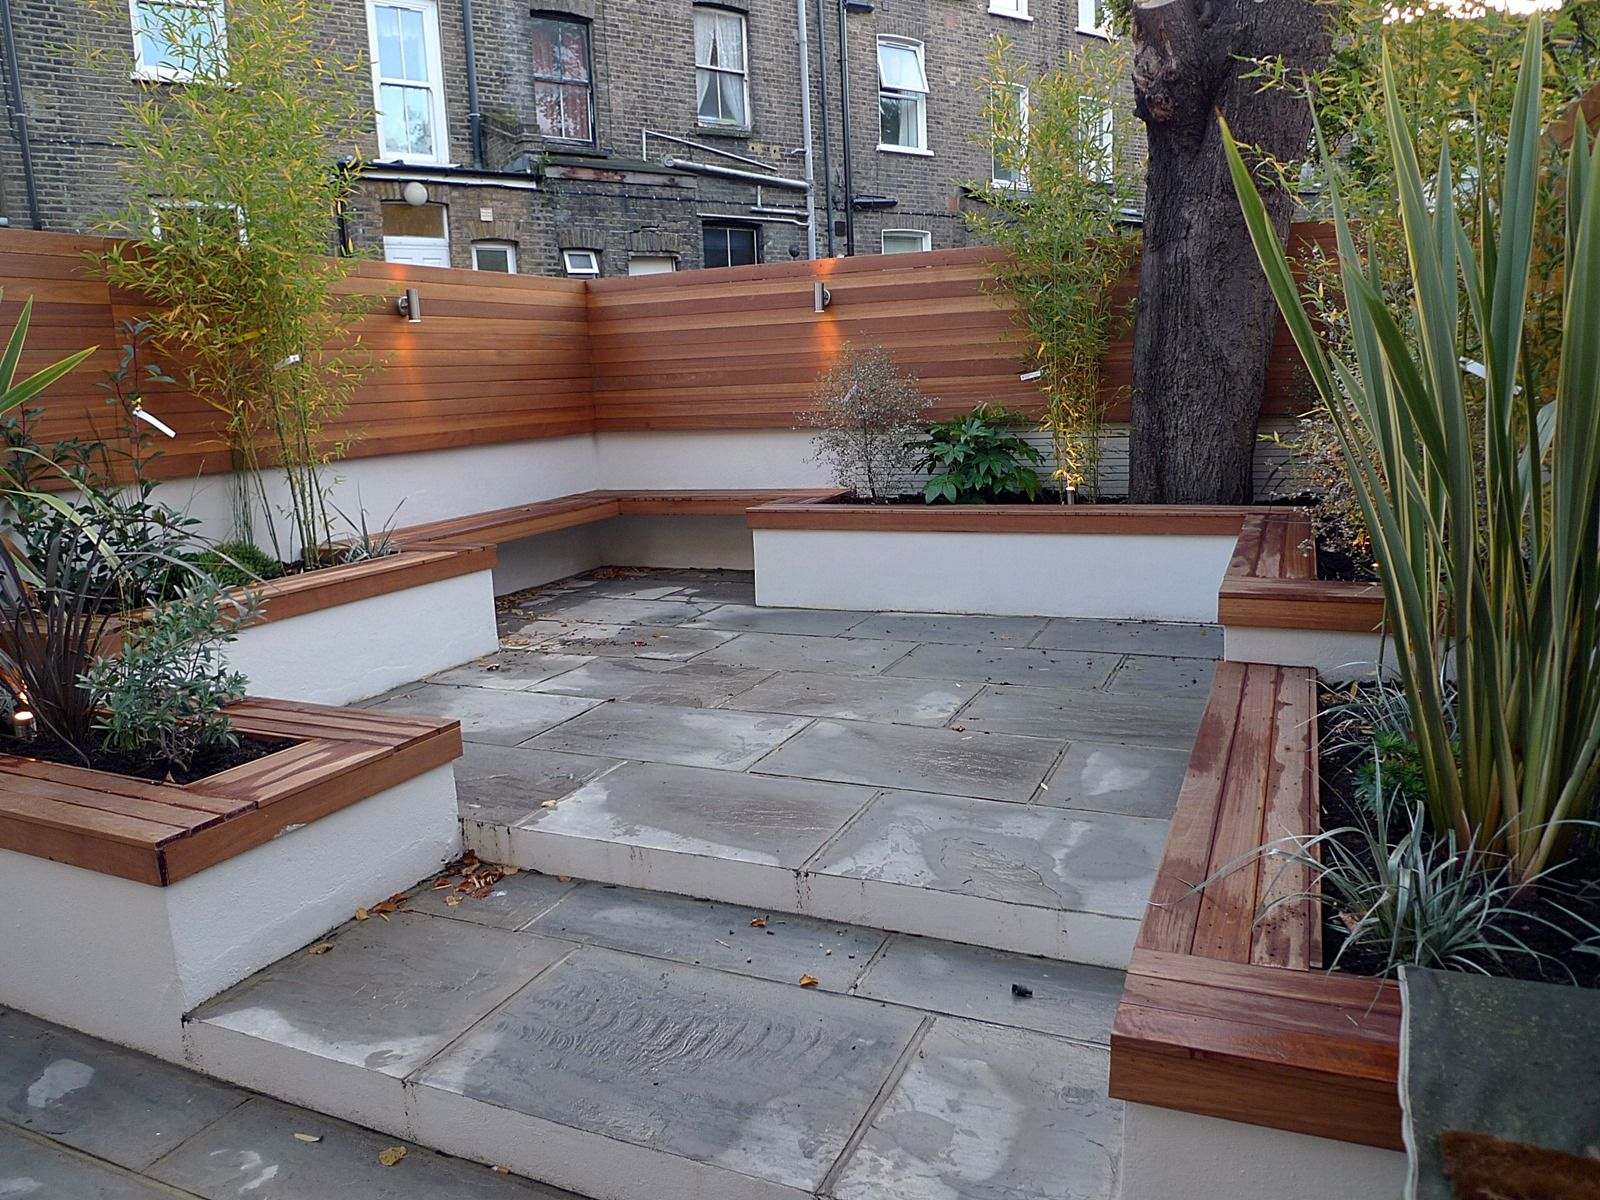 Modern london courtyard low maintenance urban outdoor for Modern low maintenance garden ideas